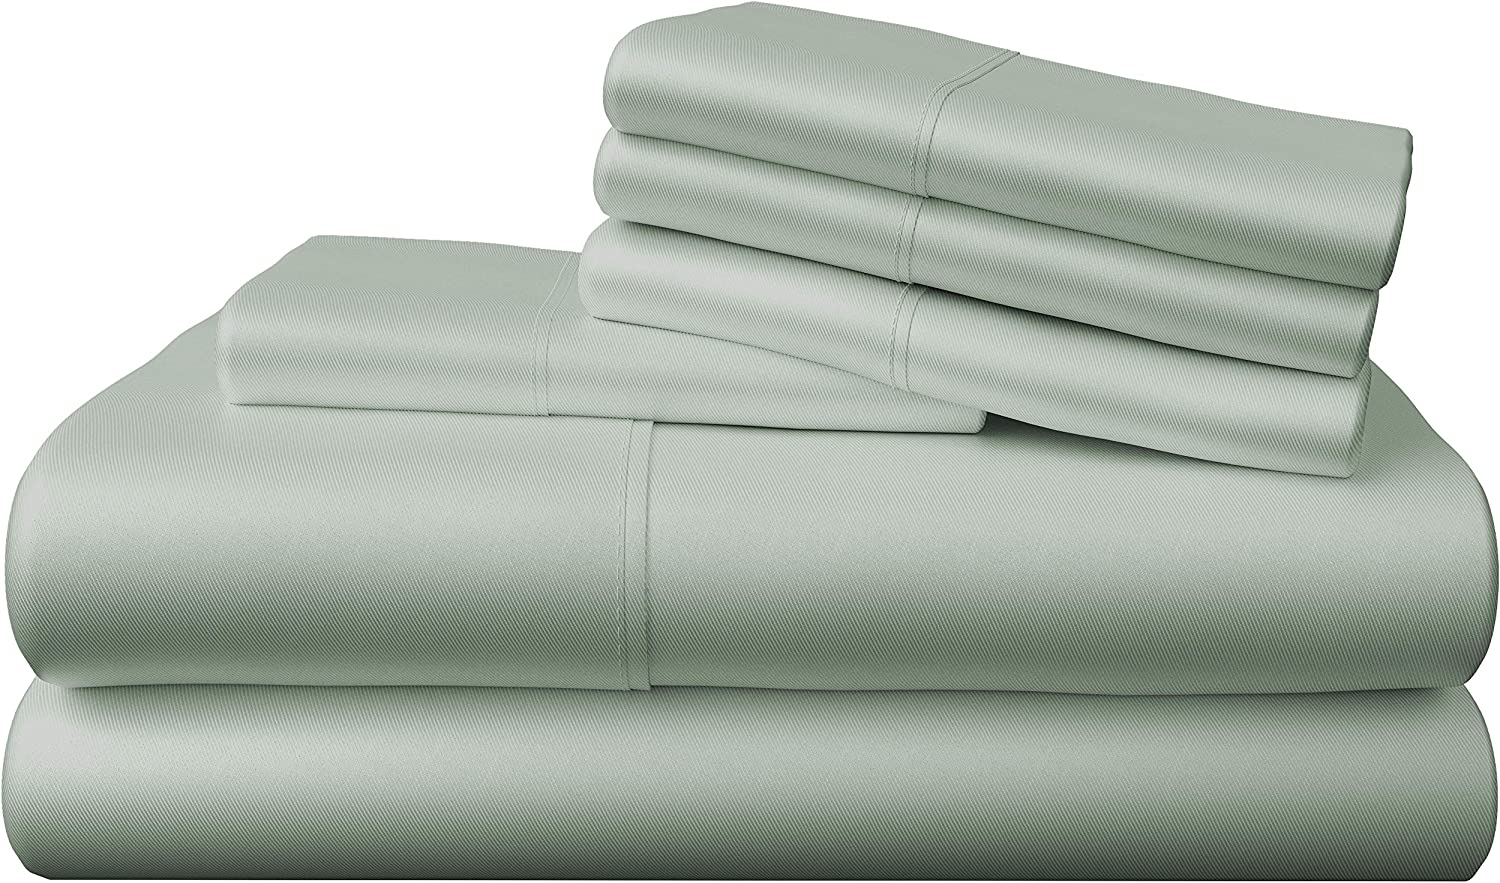 Bamboo Bay 6-Piece Bamboo Sheet Set - Soft as Eucalyptus Sheets (10 Colors) - Soft, Breathable & Cooling 100% Viscose from Bamboo - Extra Deep Pocket, No-Slip Fitted Sheet (Queen Size, Sage)